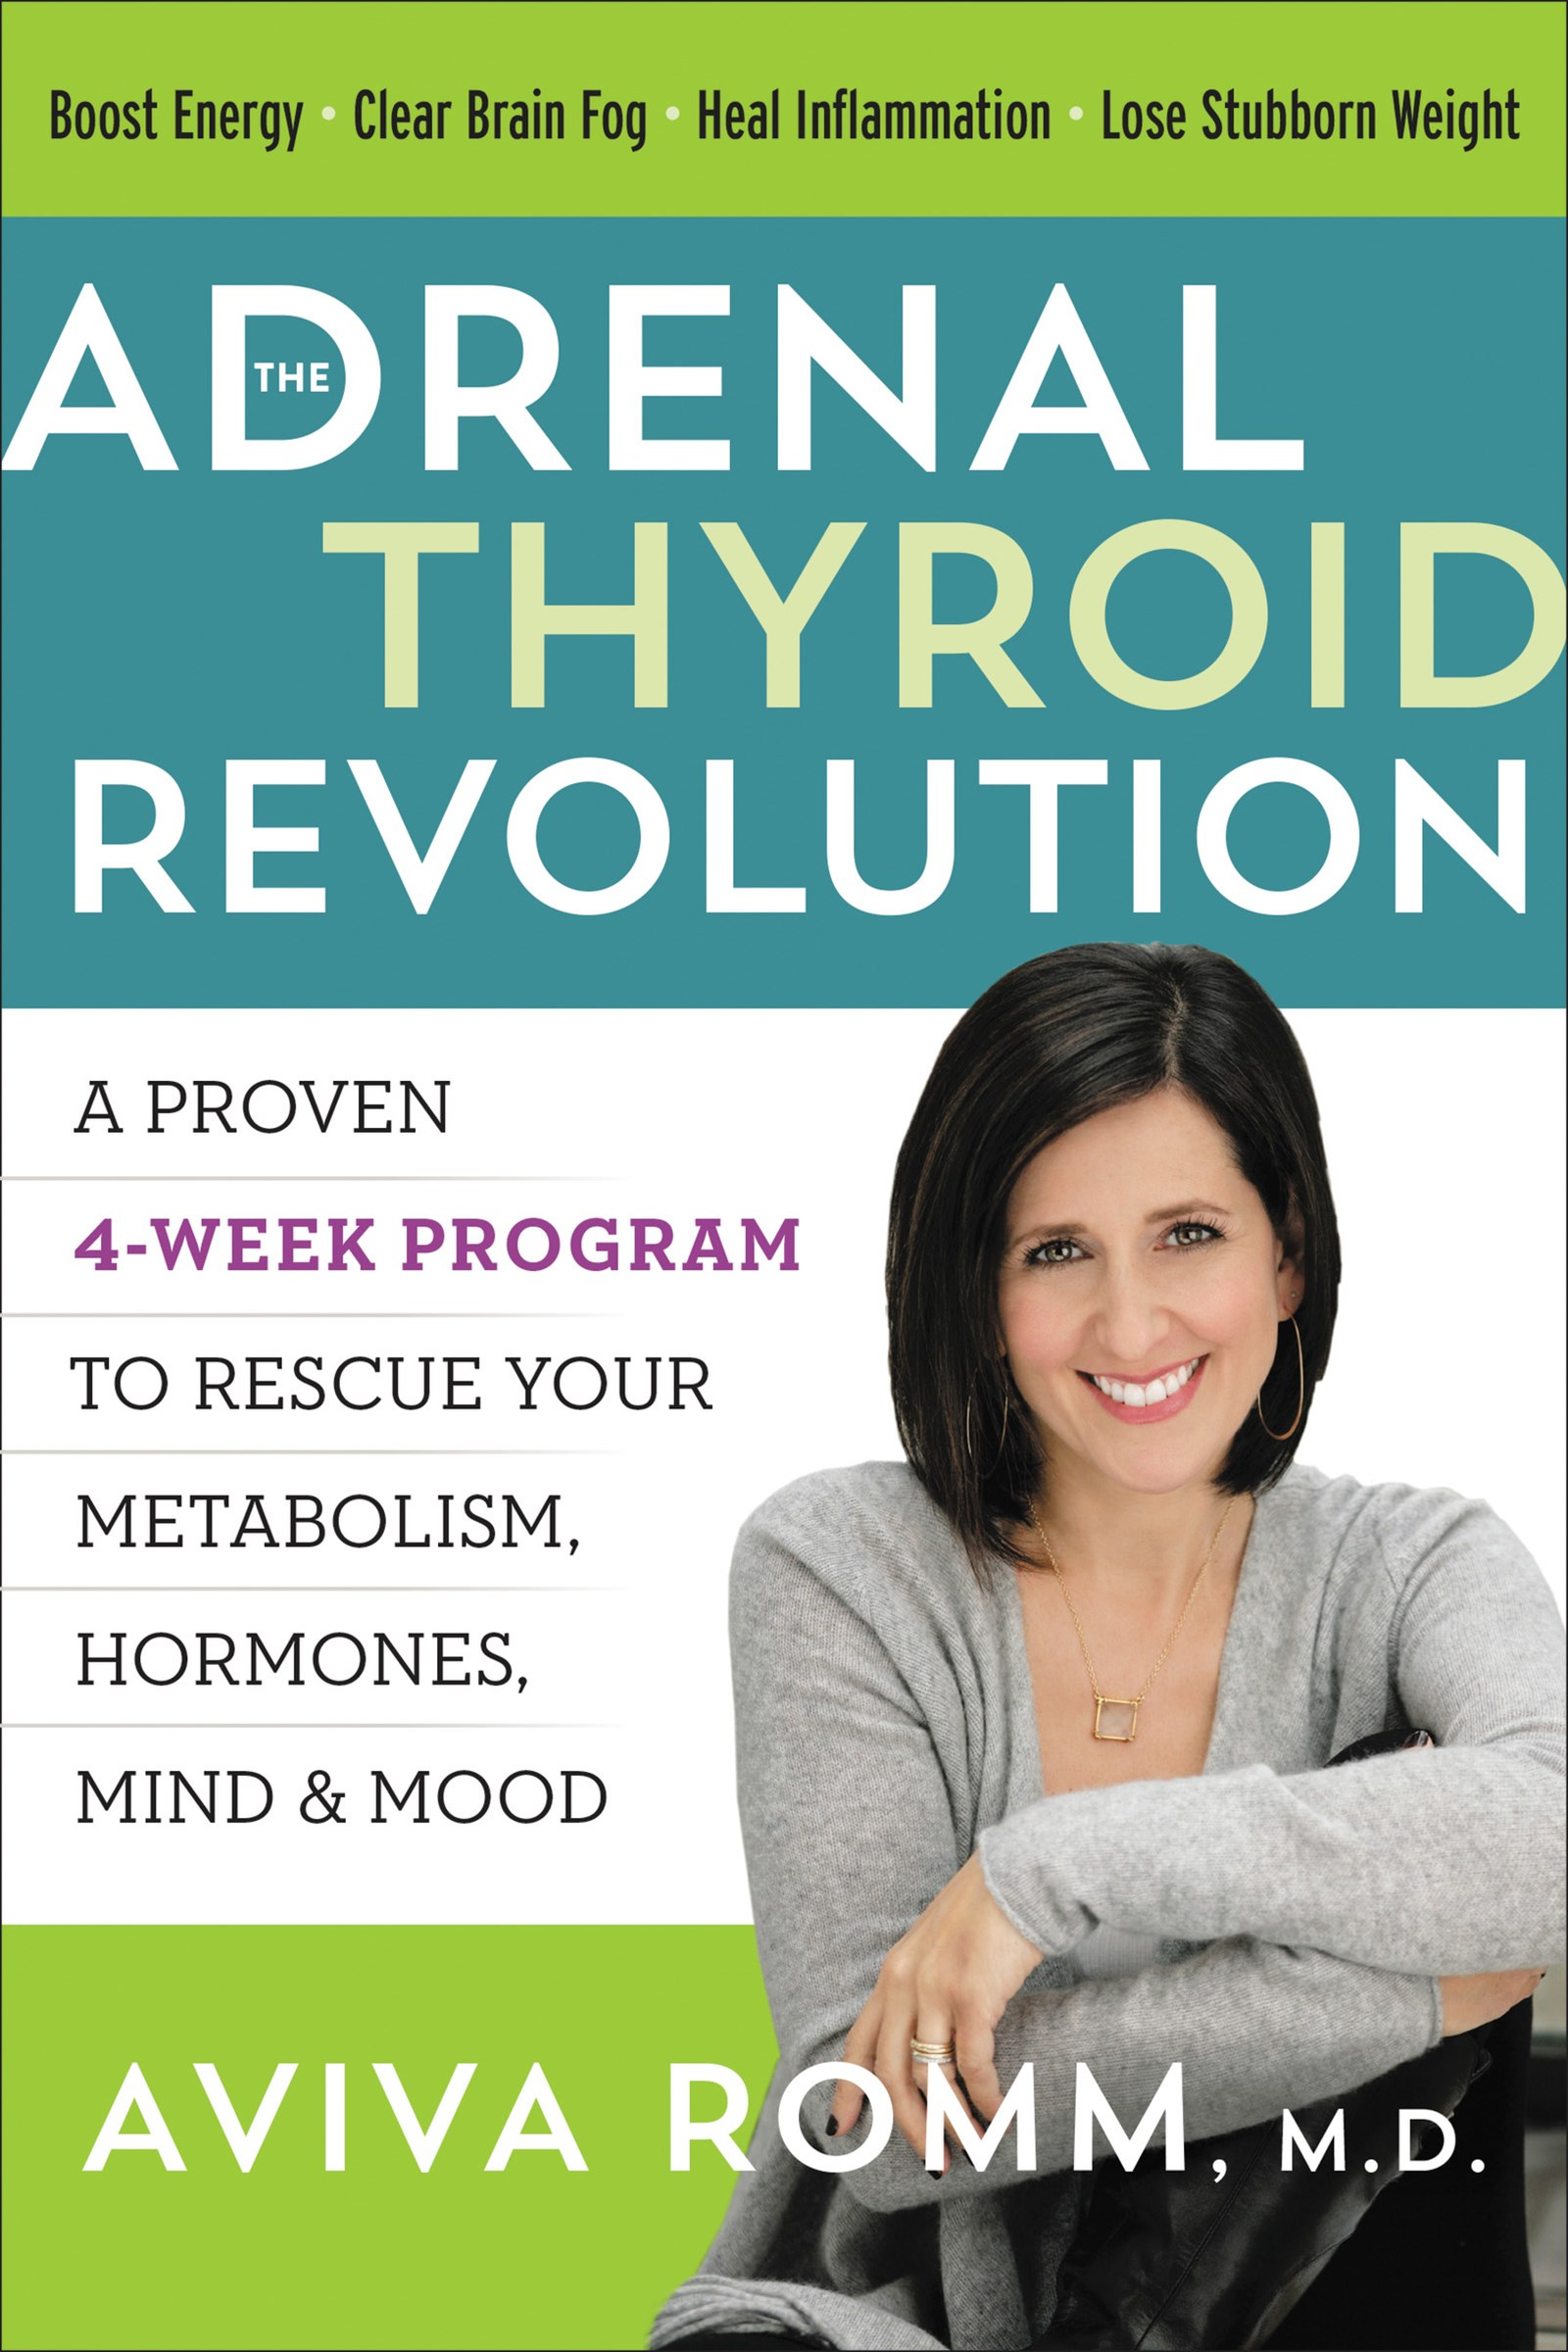 The Adrenal Thyroid Revolution: A Proven 4-Week Program to Rescue Your Metabolism, Hormones, Mind &